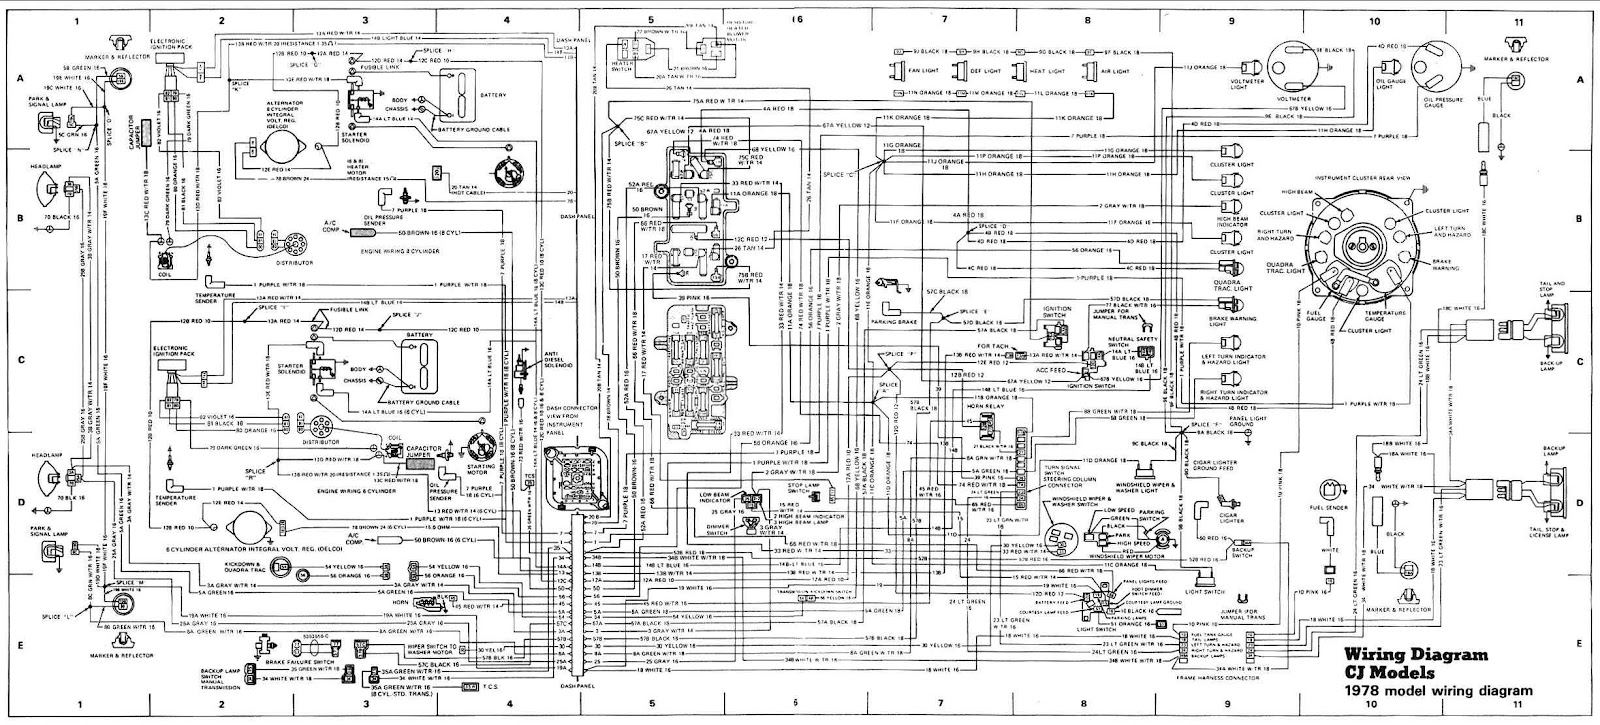 Jeep CJ Models 1978 Complete Electrical Wiring Diagram